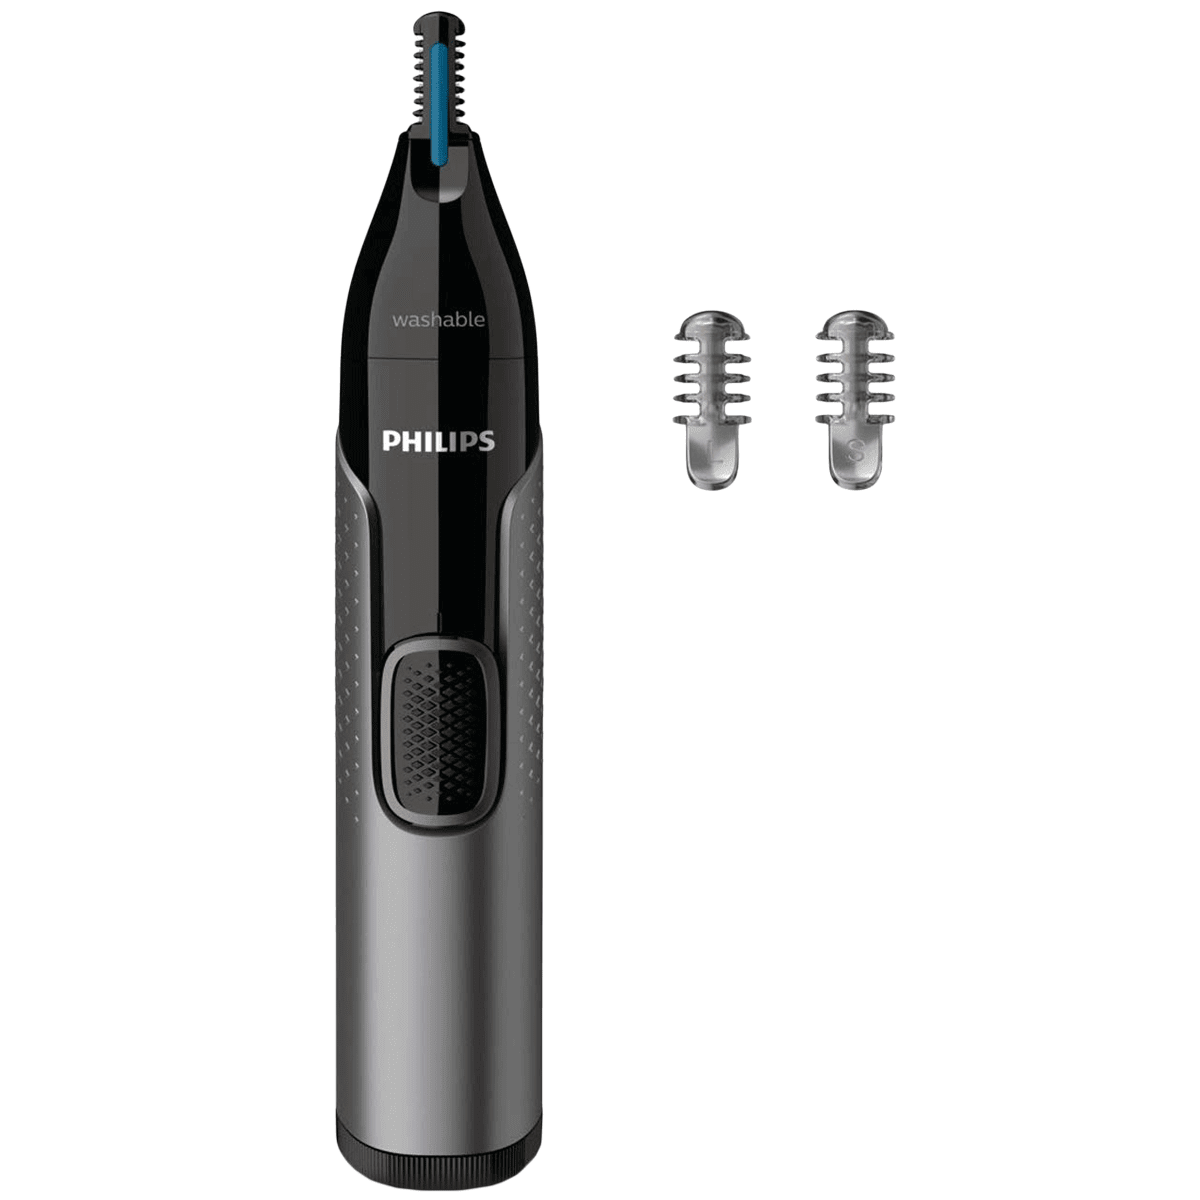 Philips Series 3000 Stainless Steel Blades Cordless Nose, Ear & Eyebrow Trimmer (Precision Trim Technology, NT3650/16, Grey)